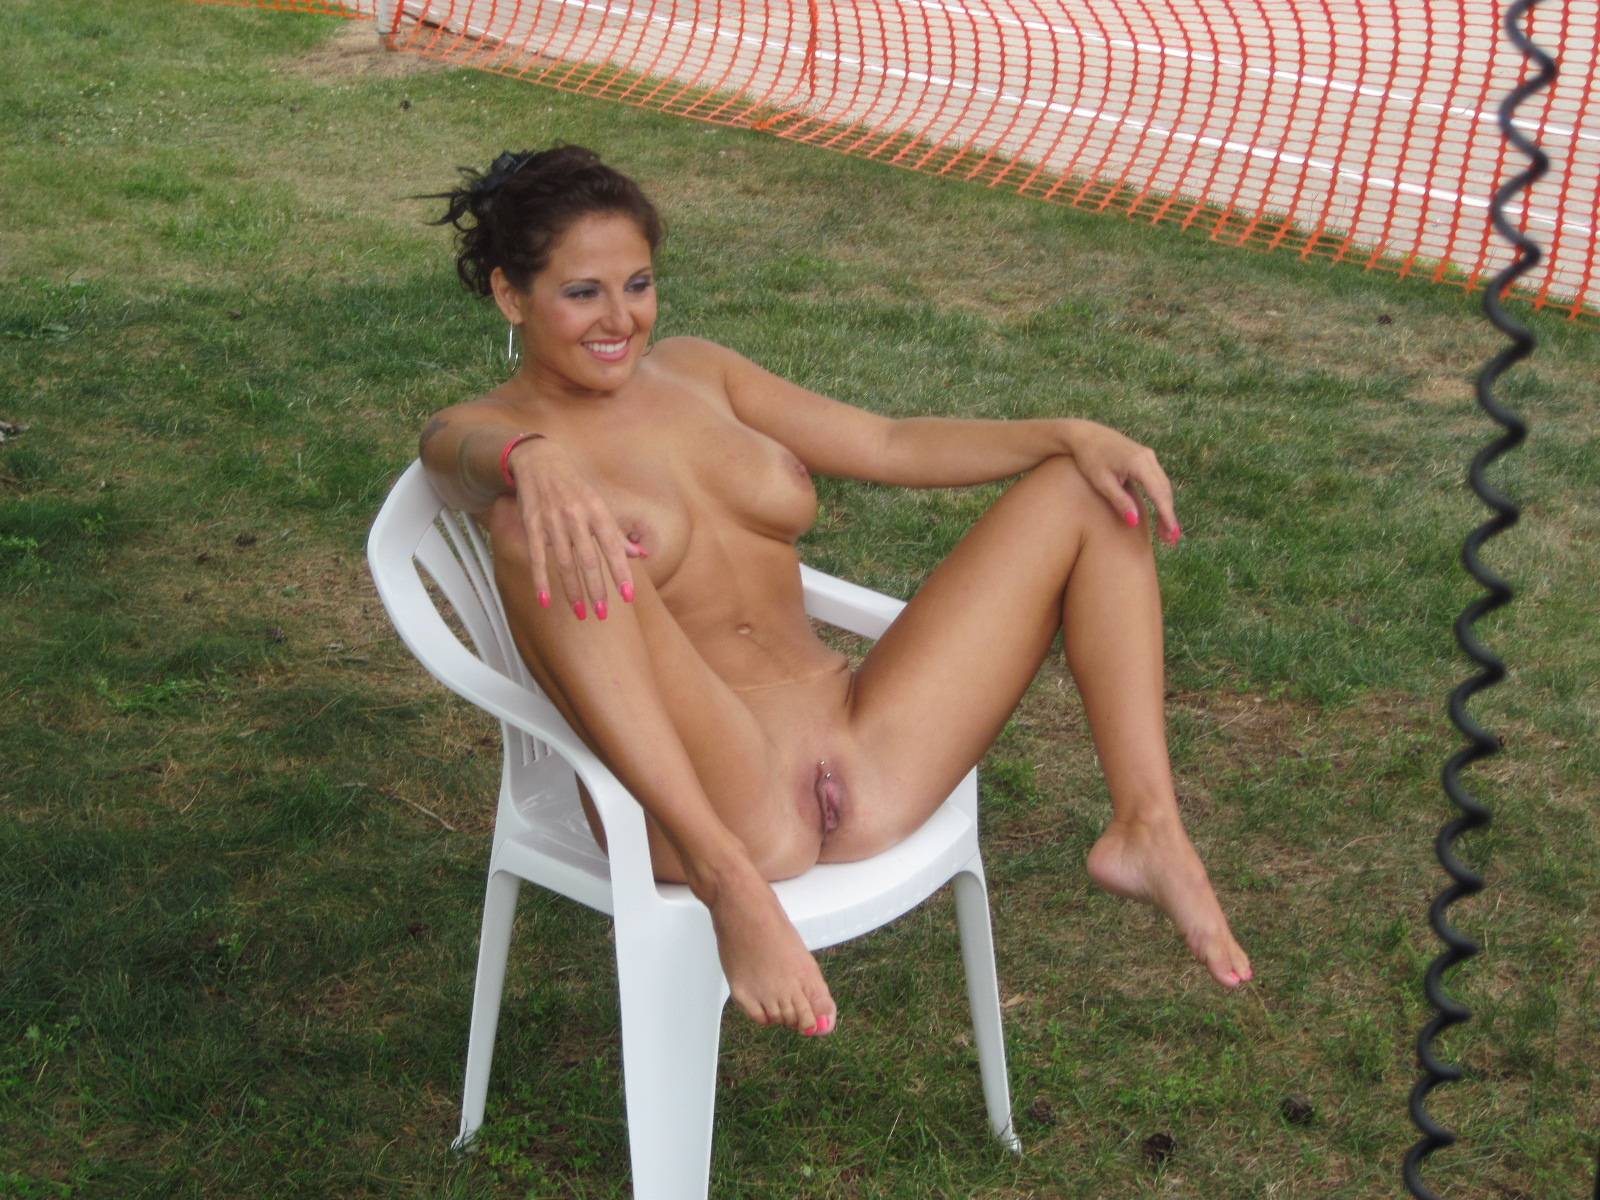 Mine nude photo of woman very